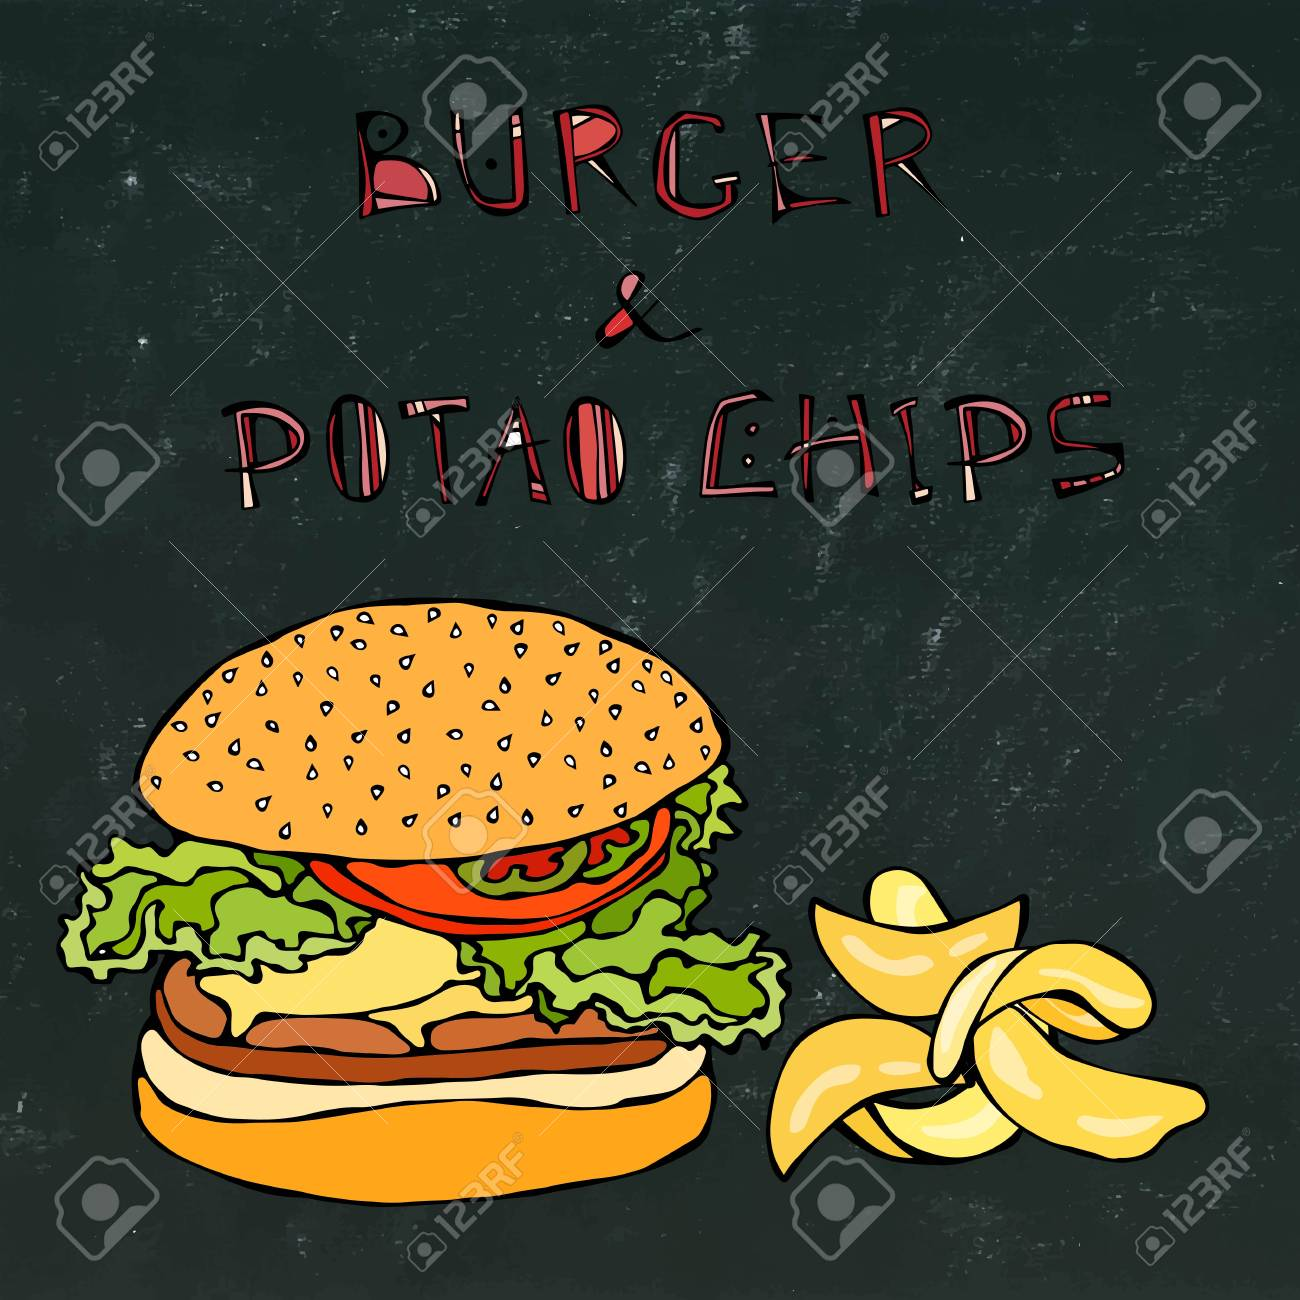 Big Hamburger Or Cheeseburger Beer Mug Or Pint And Potato Chips Royalty Free Cliparts Vectors And Stock Illustration Image 80763303